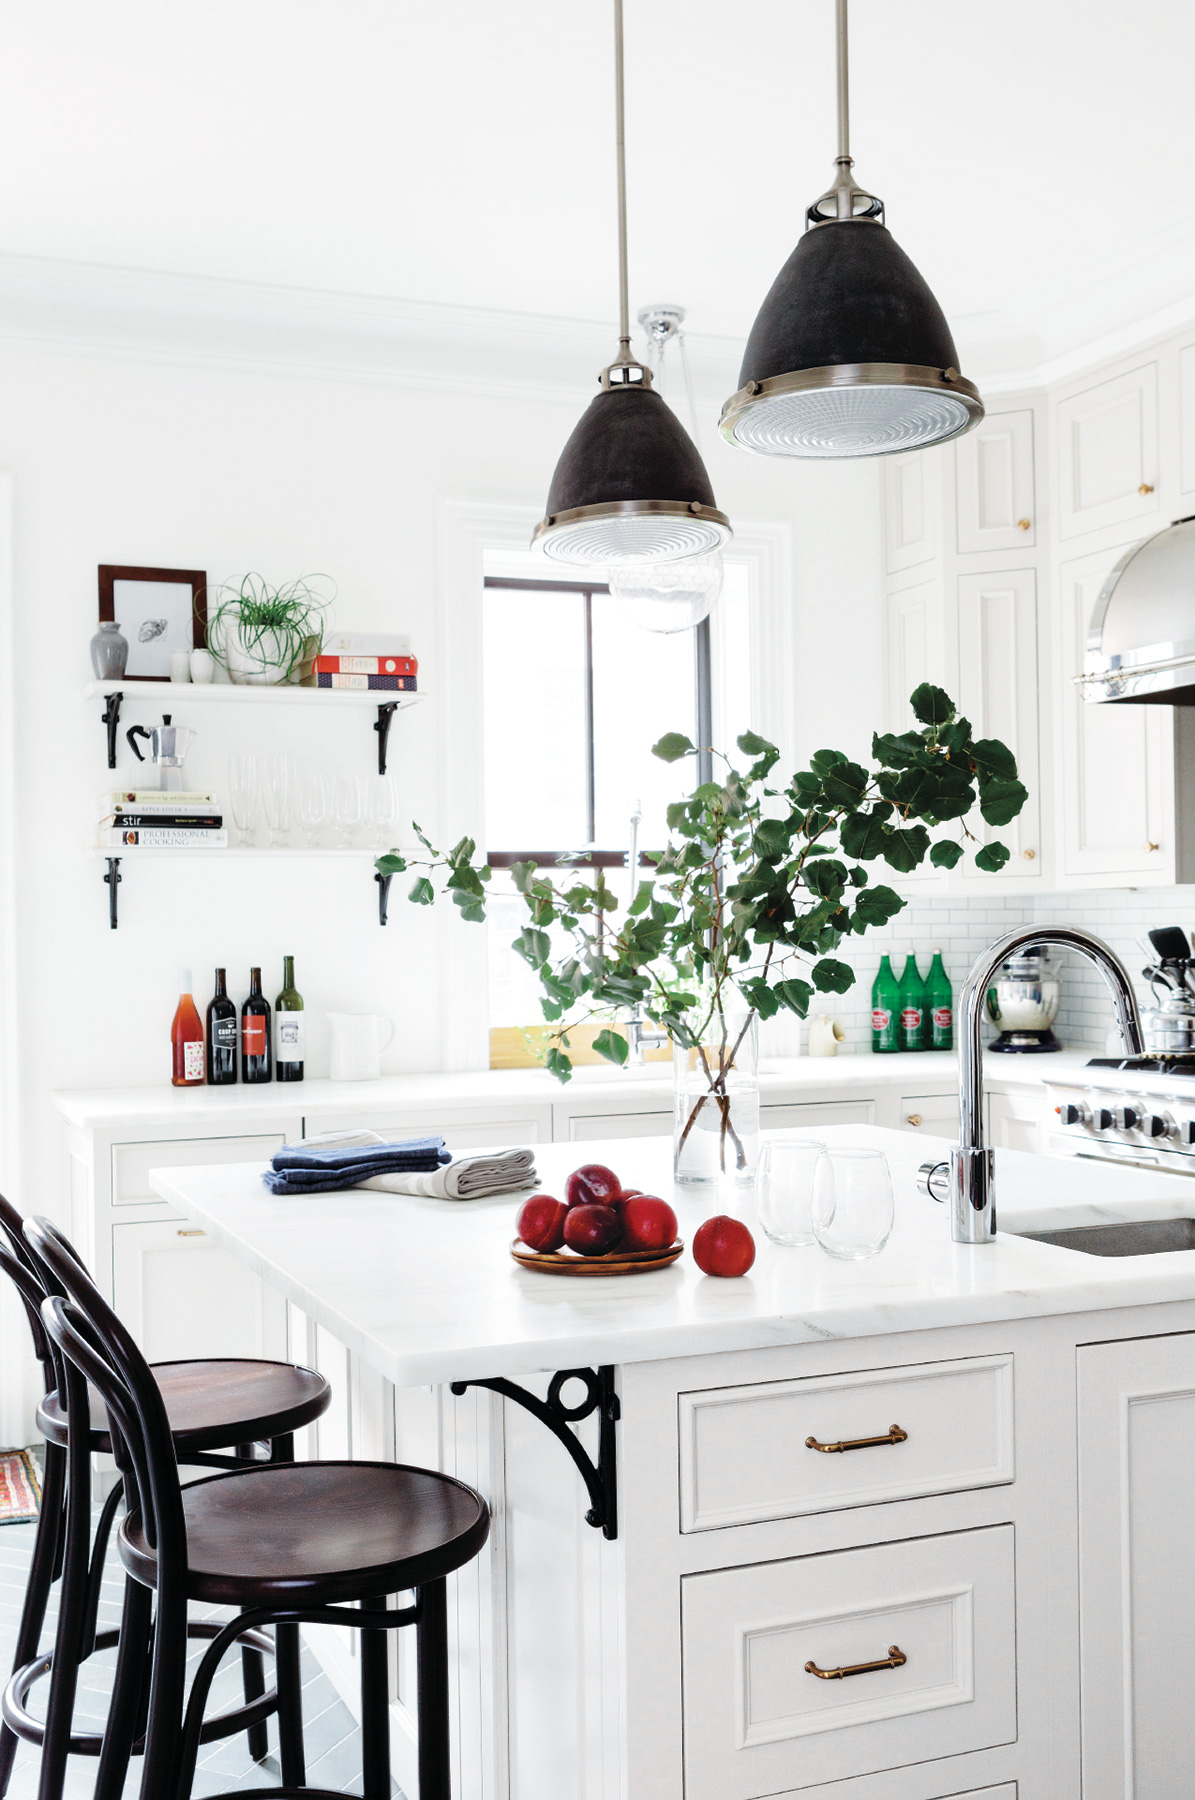 5 Pro-Approved Ways to Make a Small Kitchen Look Bigger | Real Simple